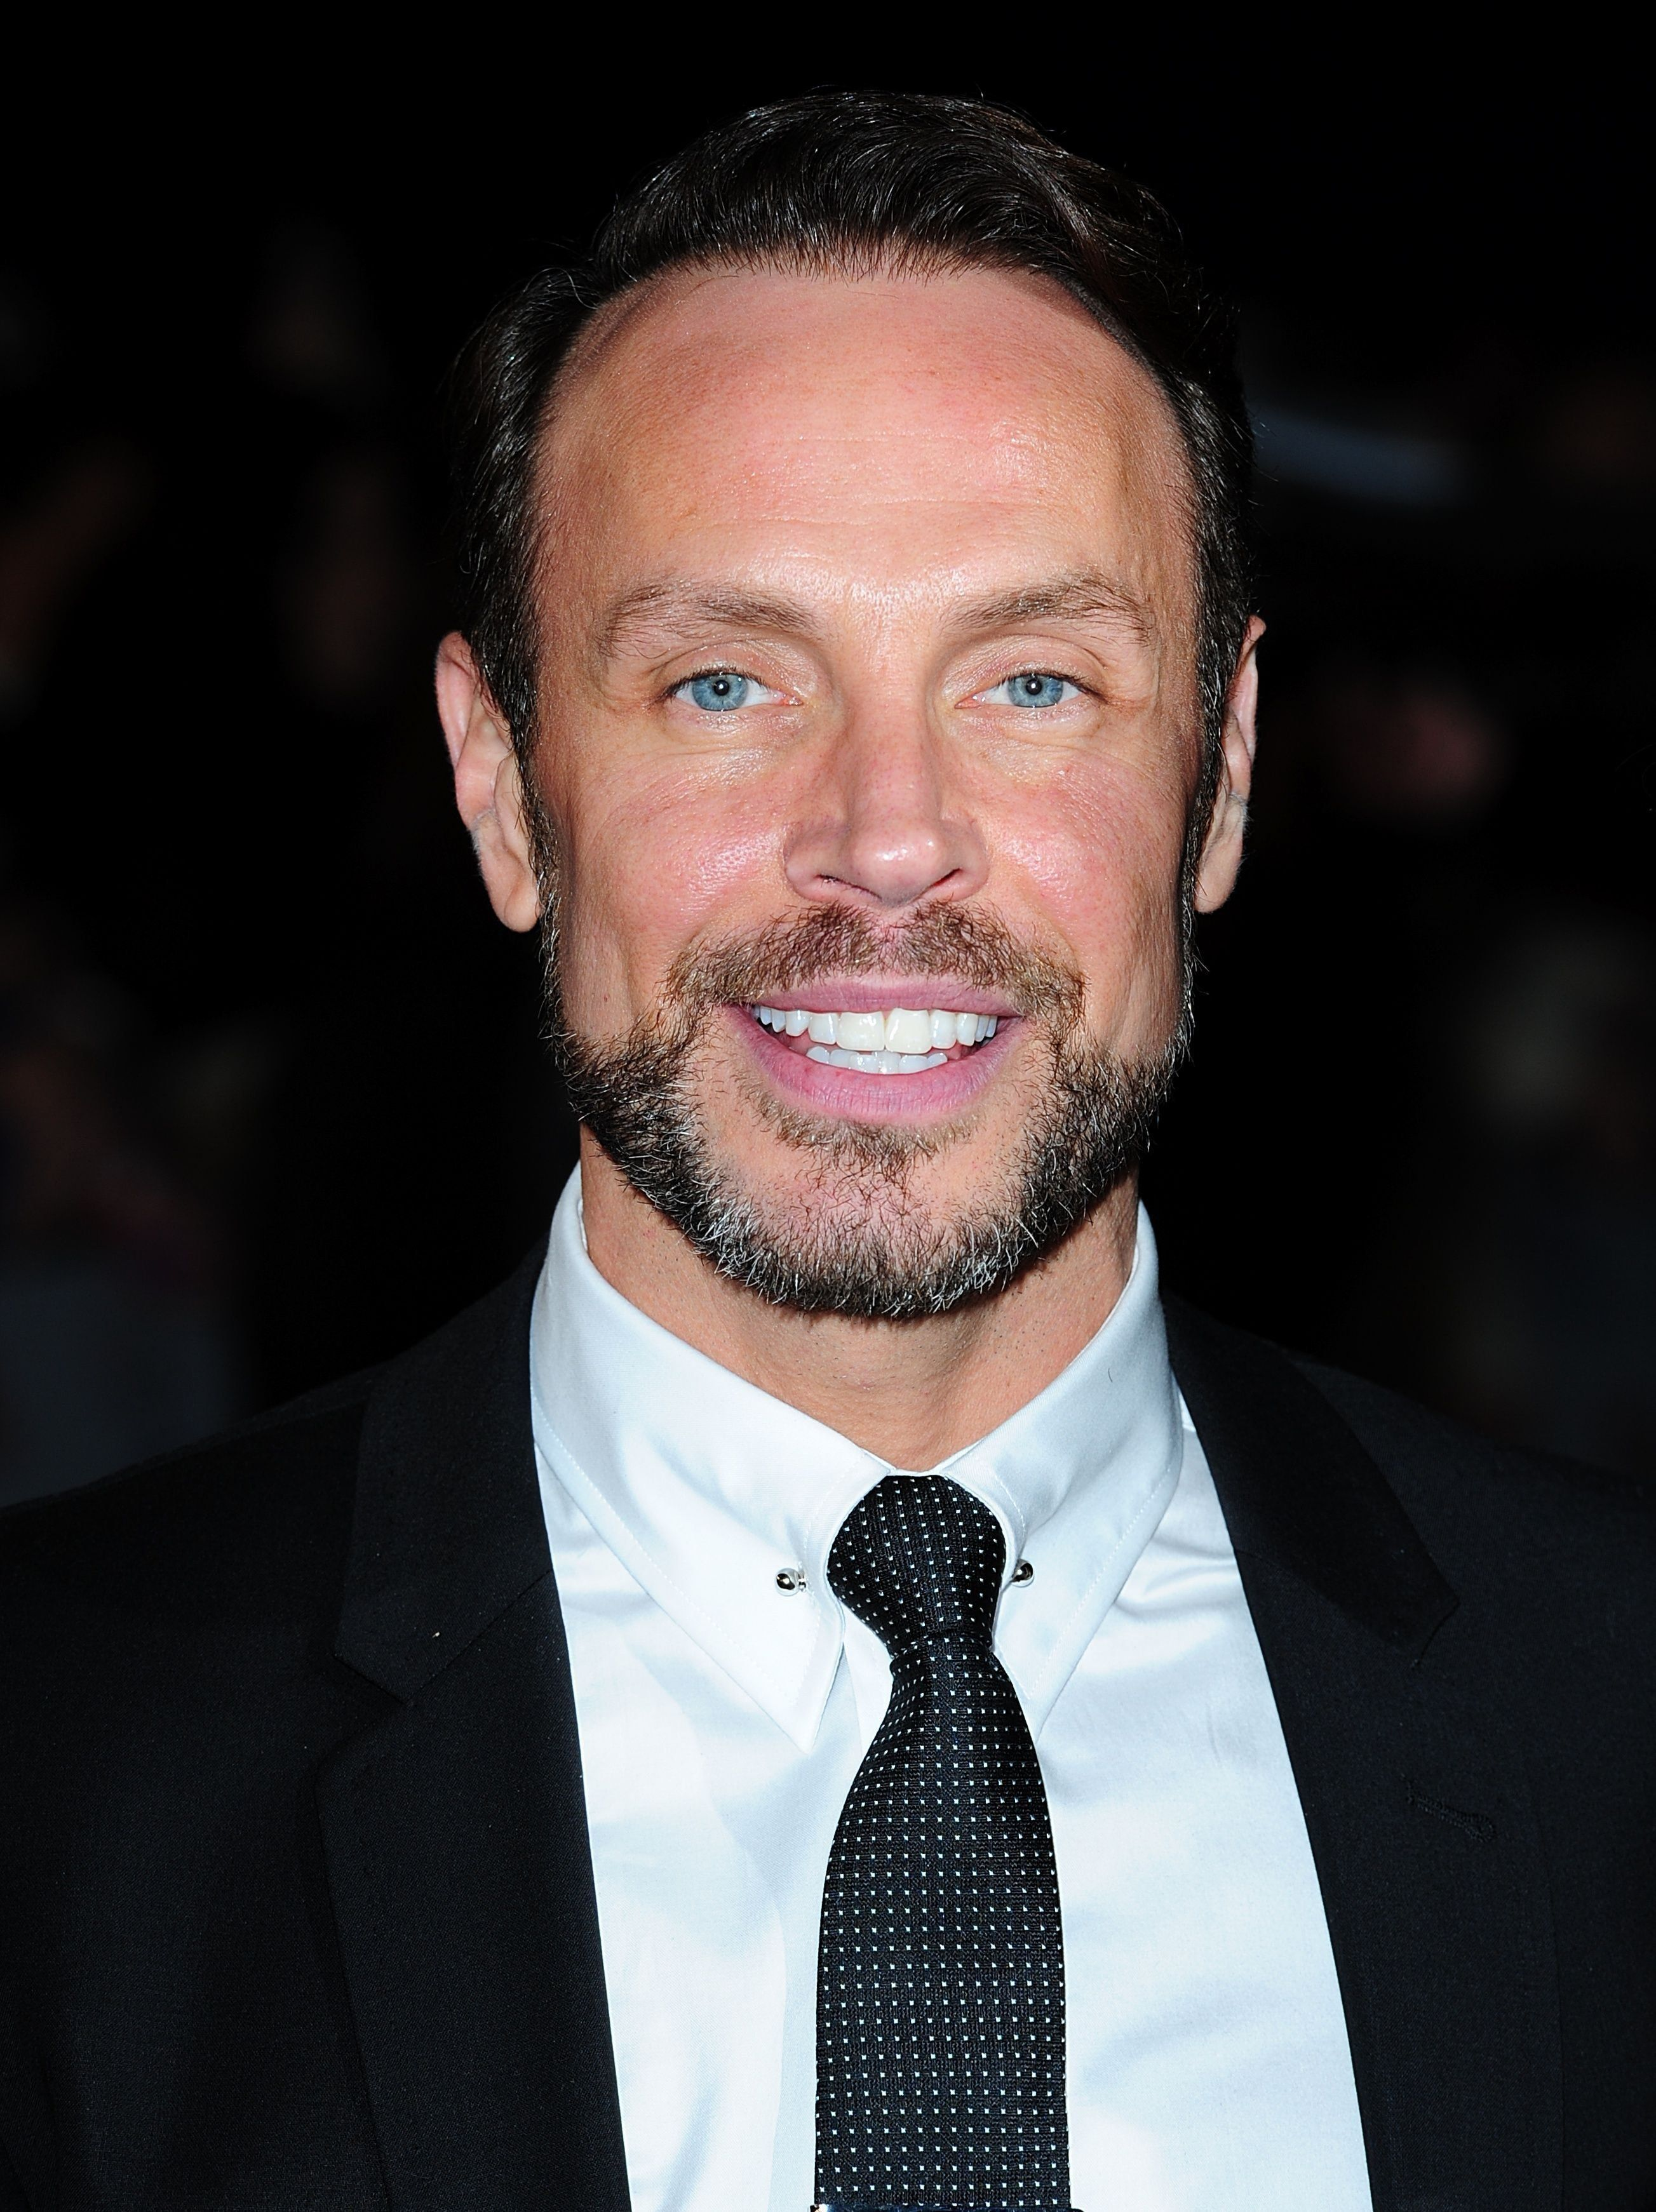 Jason Gardiner Slammed For 'Disgusting And Insensitive' Joke About Princess Diana's